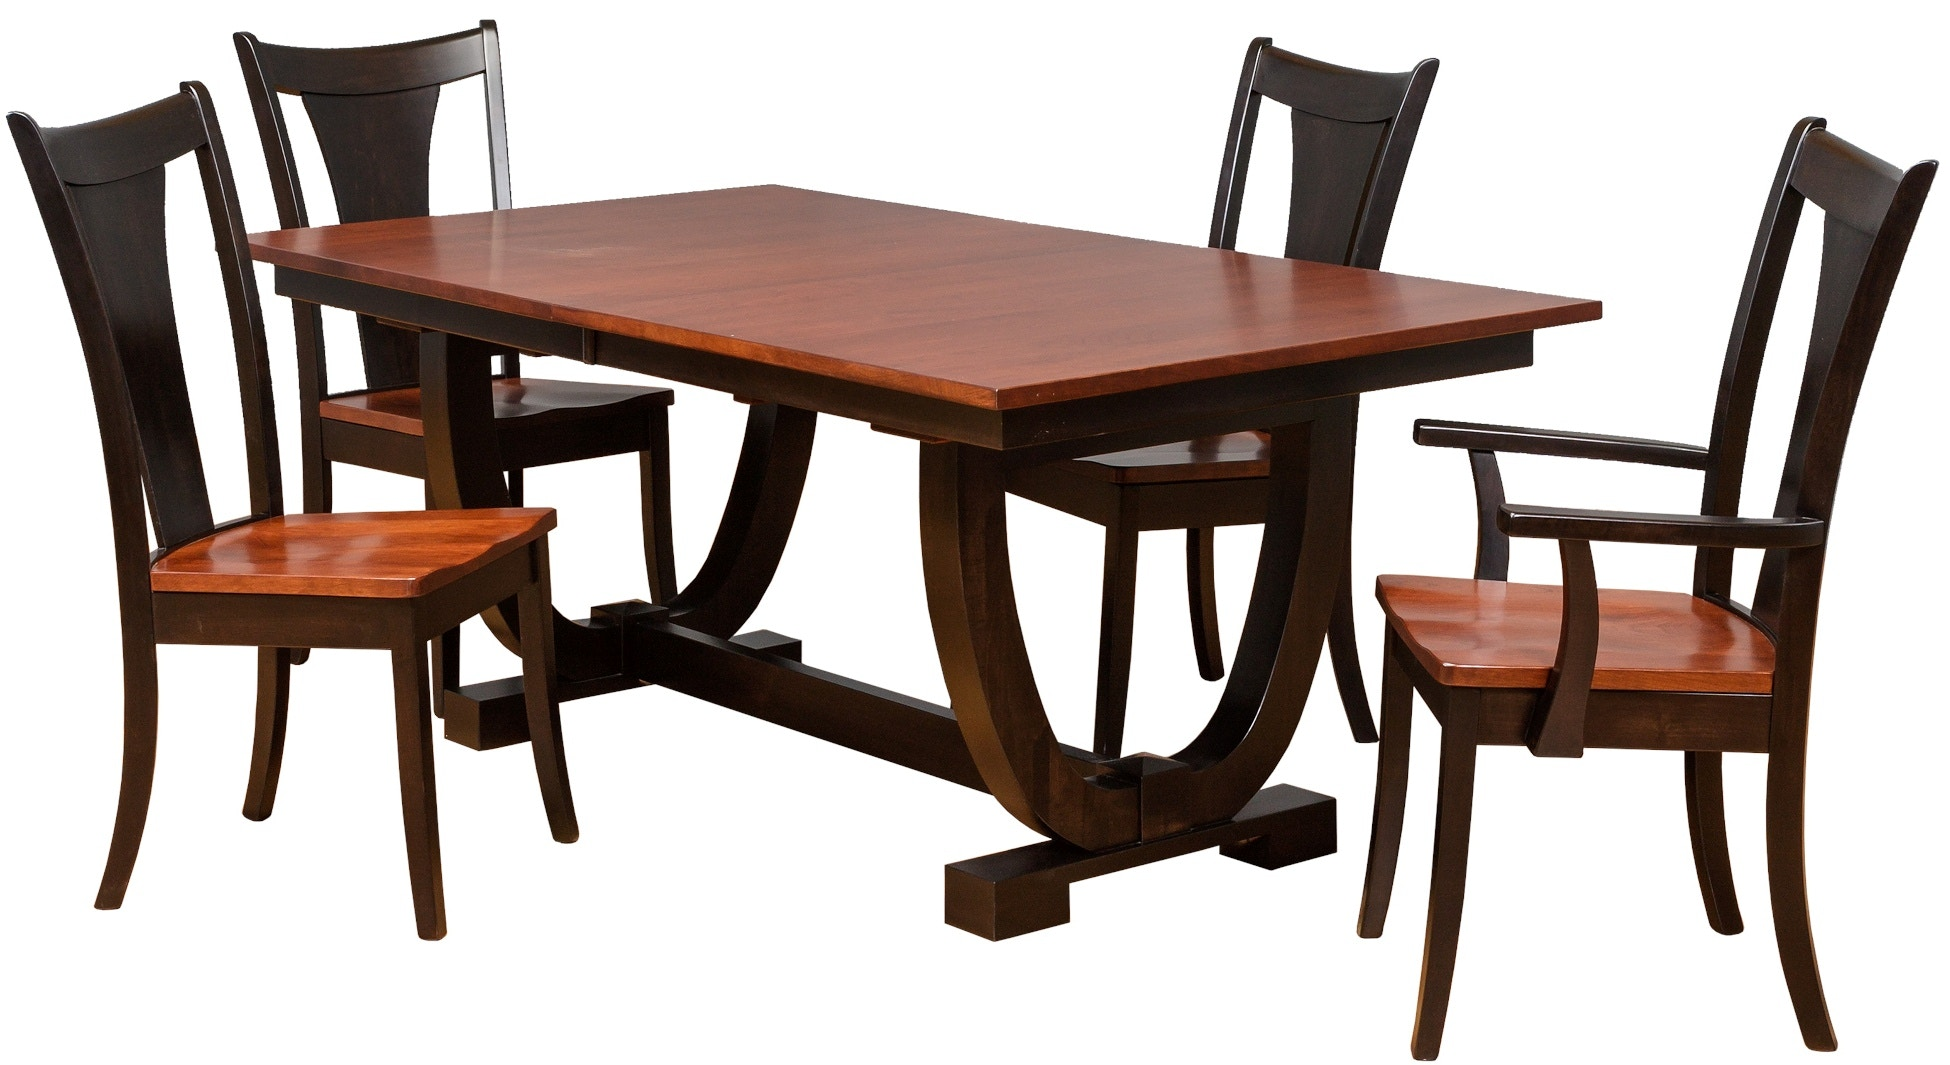 42722 FAL. Table And Chairs